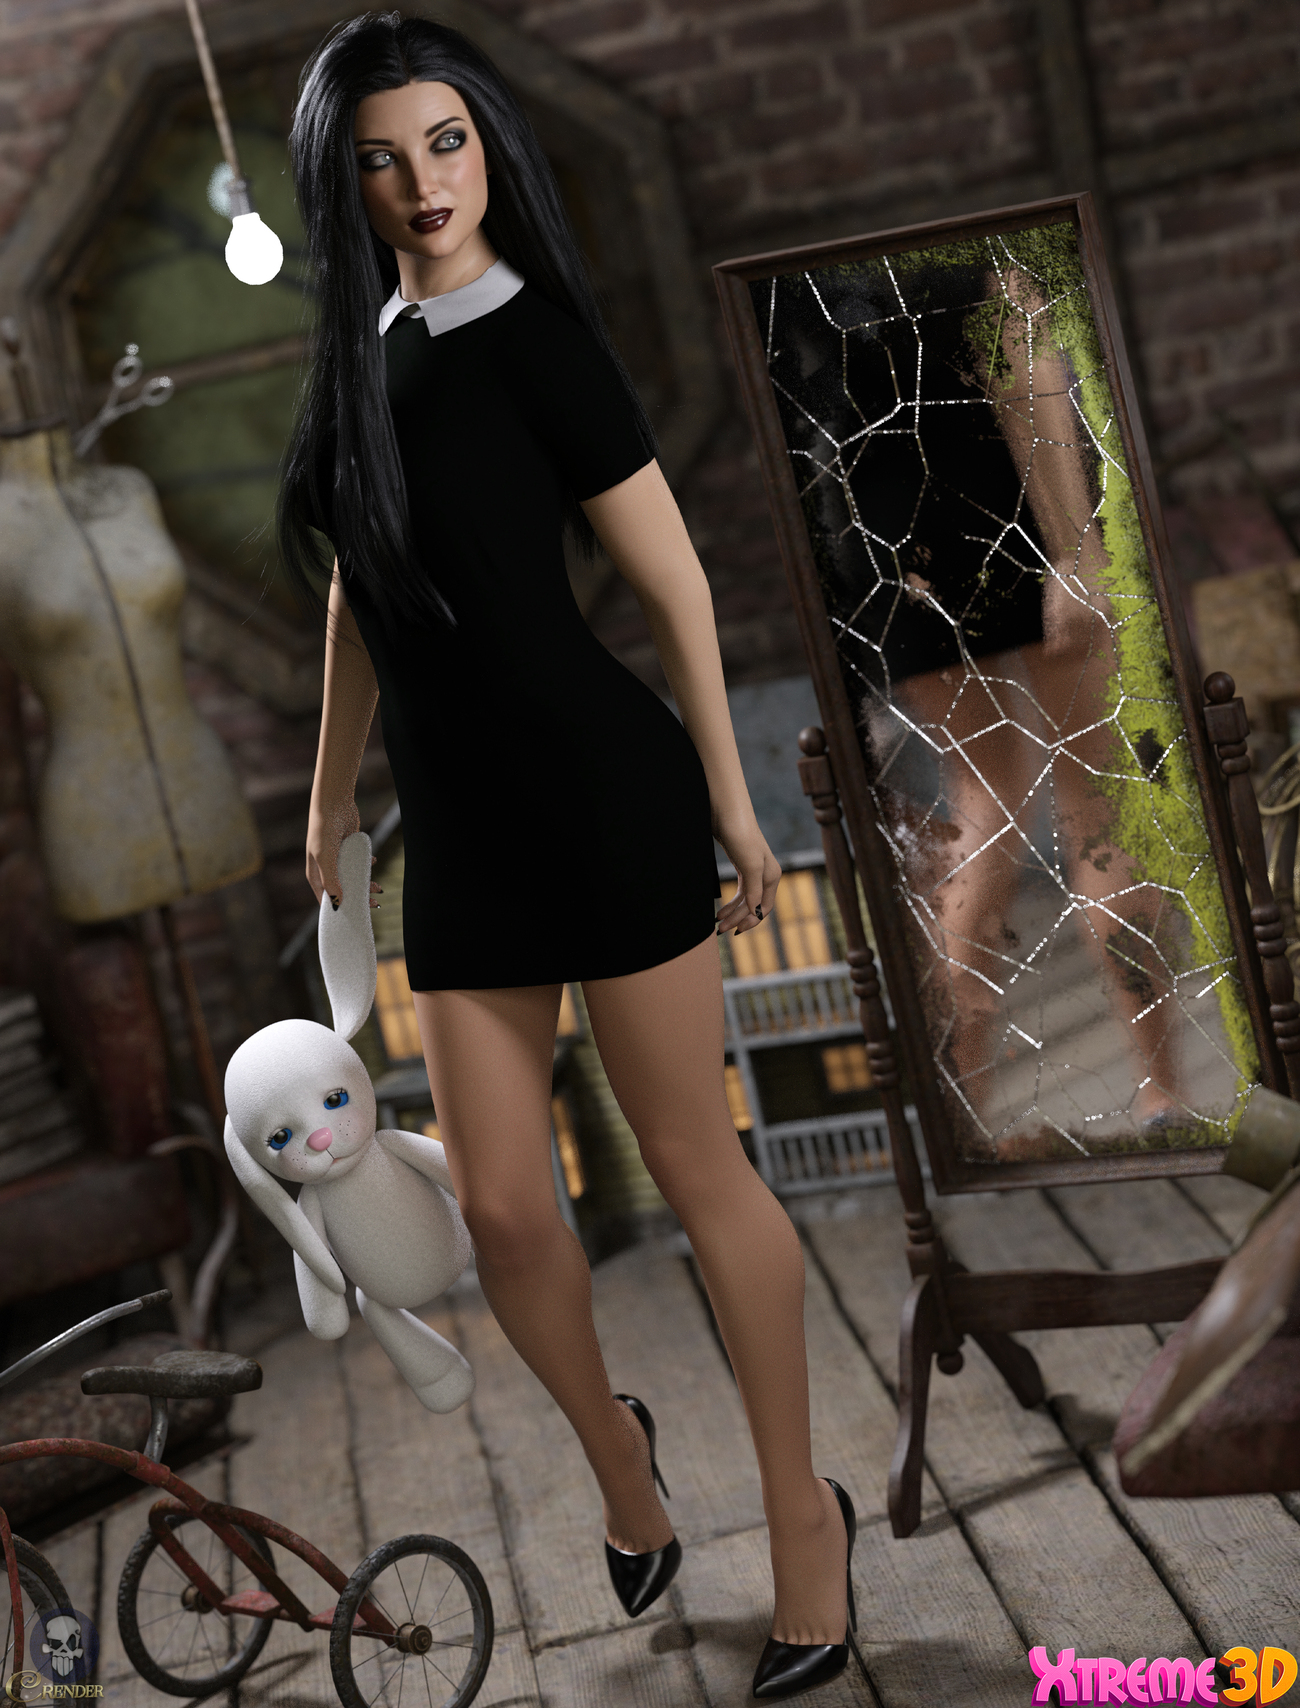 Dforce Mysterious and Spooky G8F by Kaleya 2 by crender